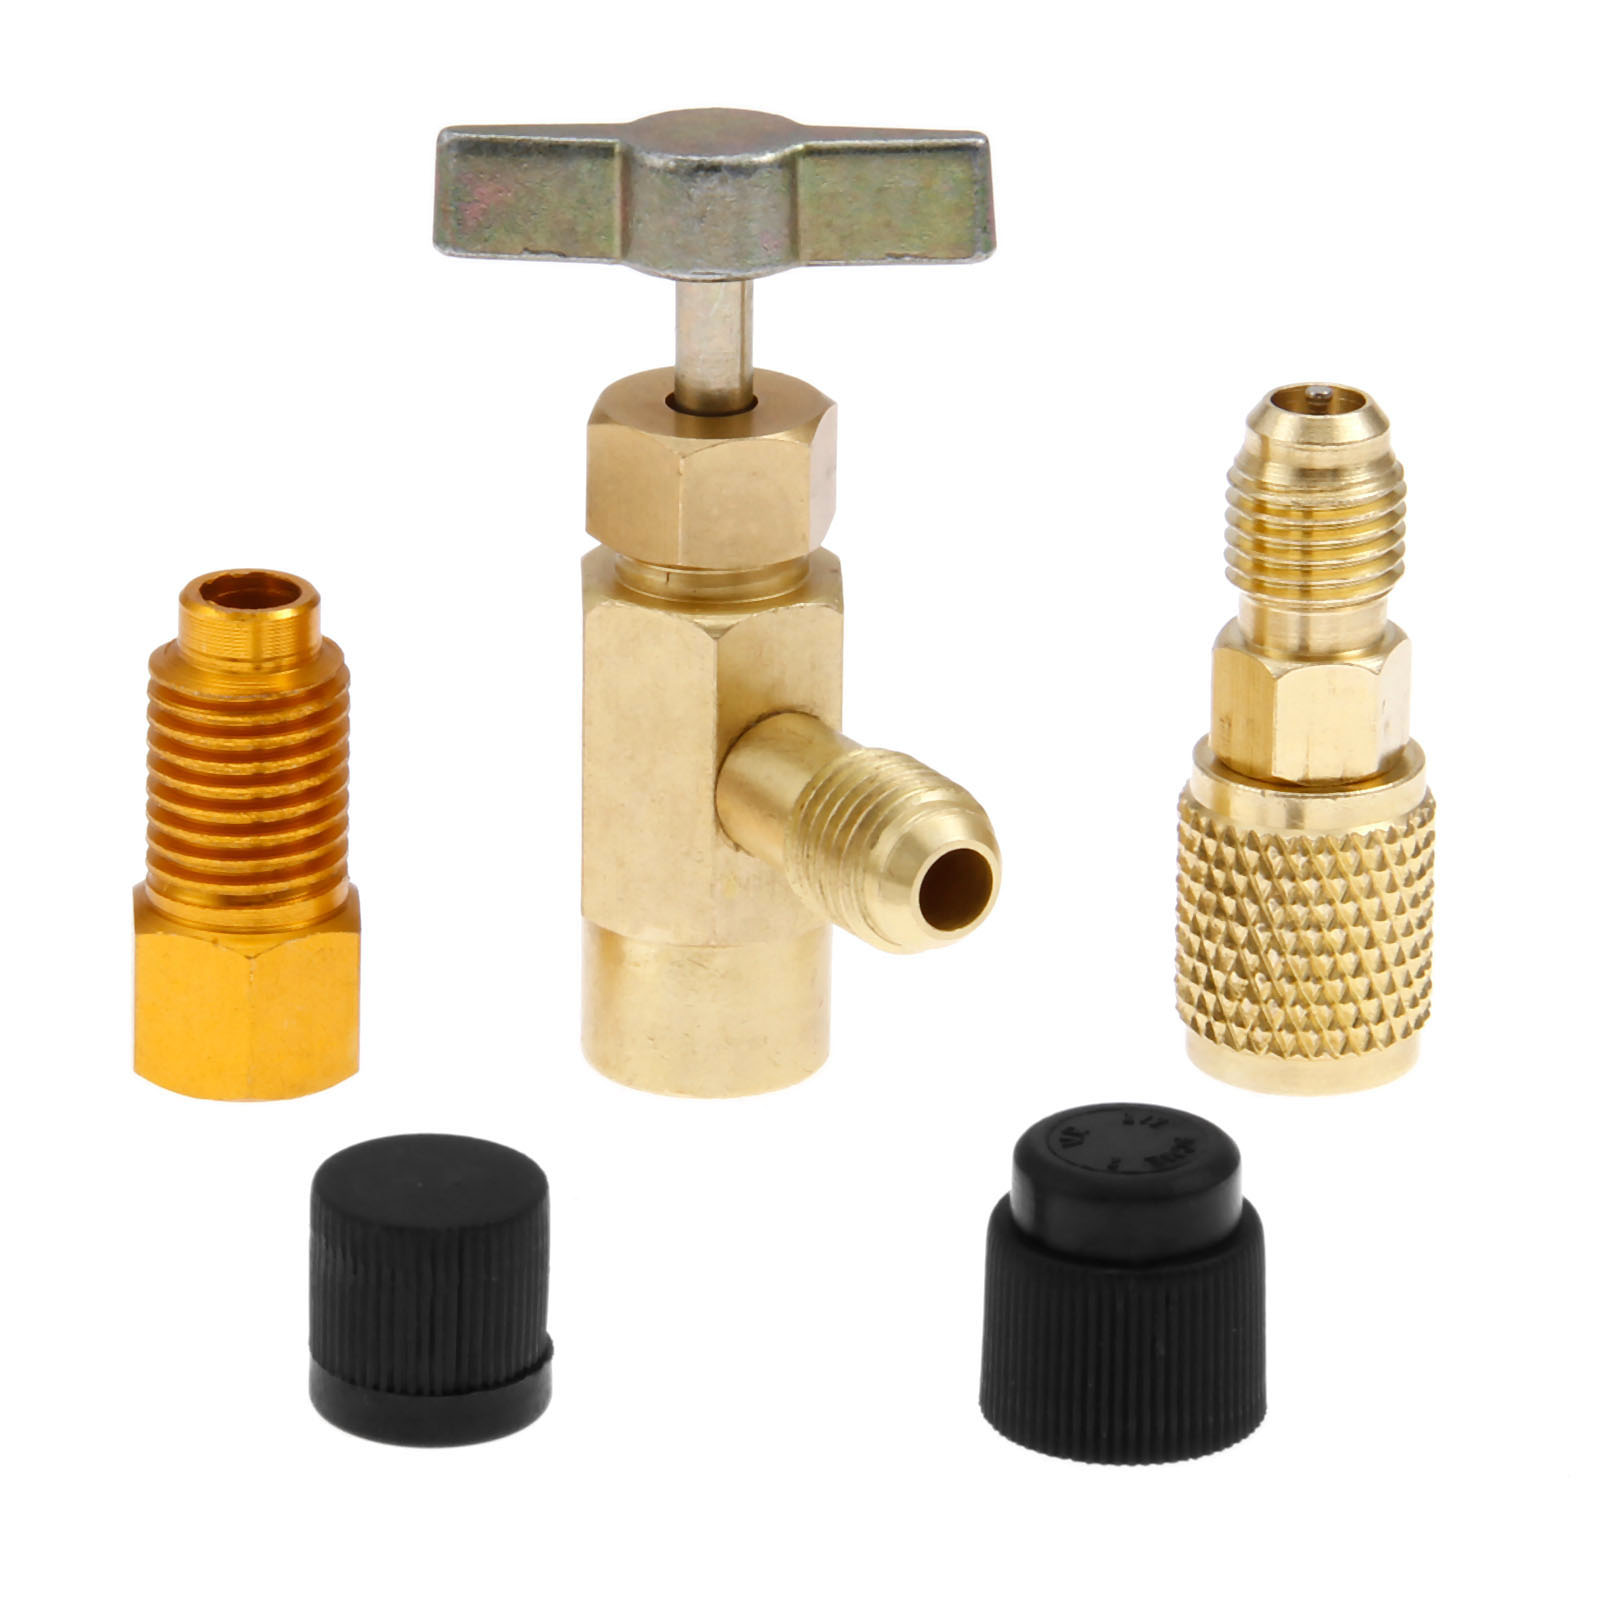 R1234yf Refrigerant Can Tap Kit W/ Adapter For R12 R22 R134A Charging Hose 1/2 ACME Female 1/4 SAE Male AC Bottle Opener